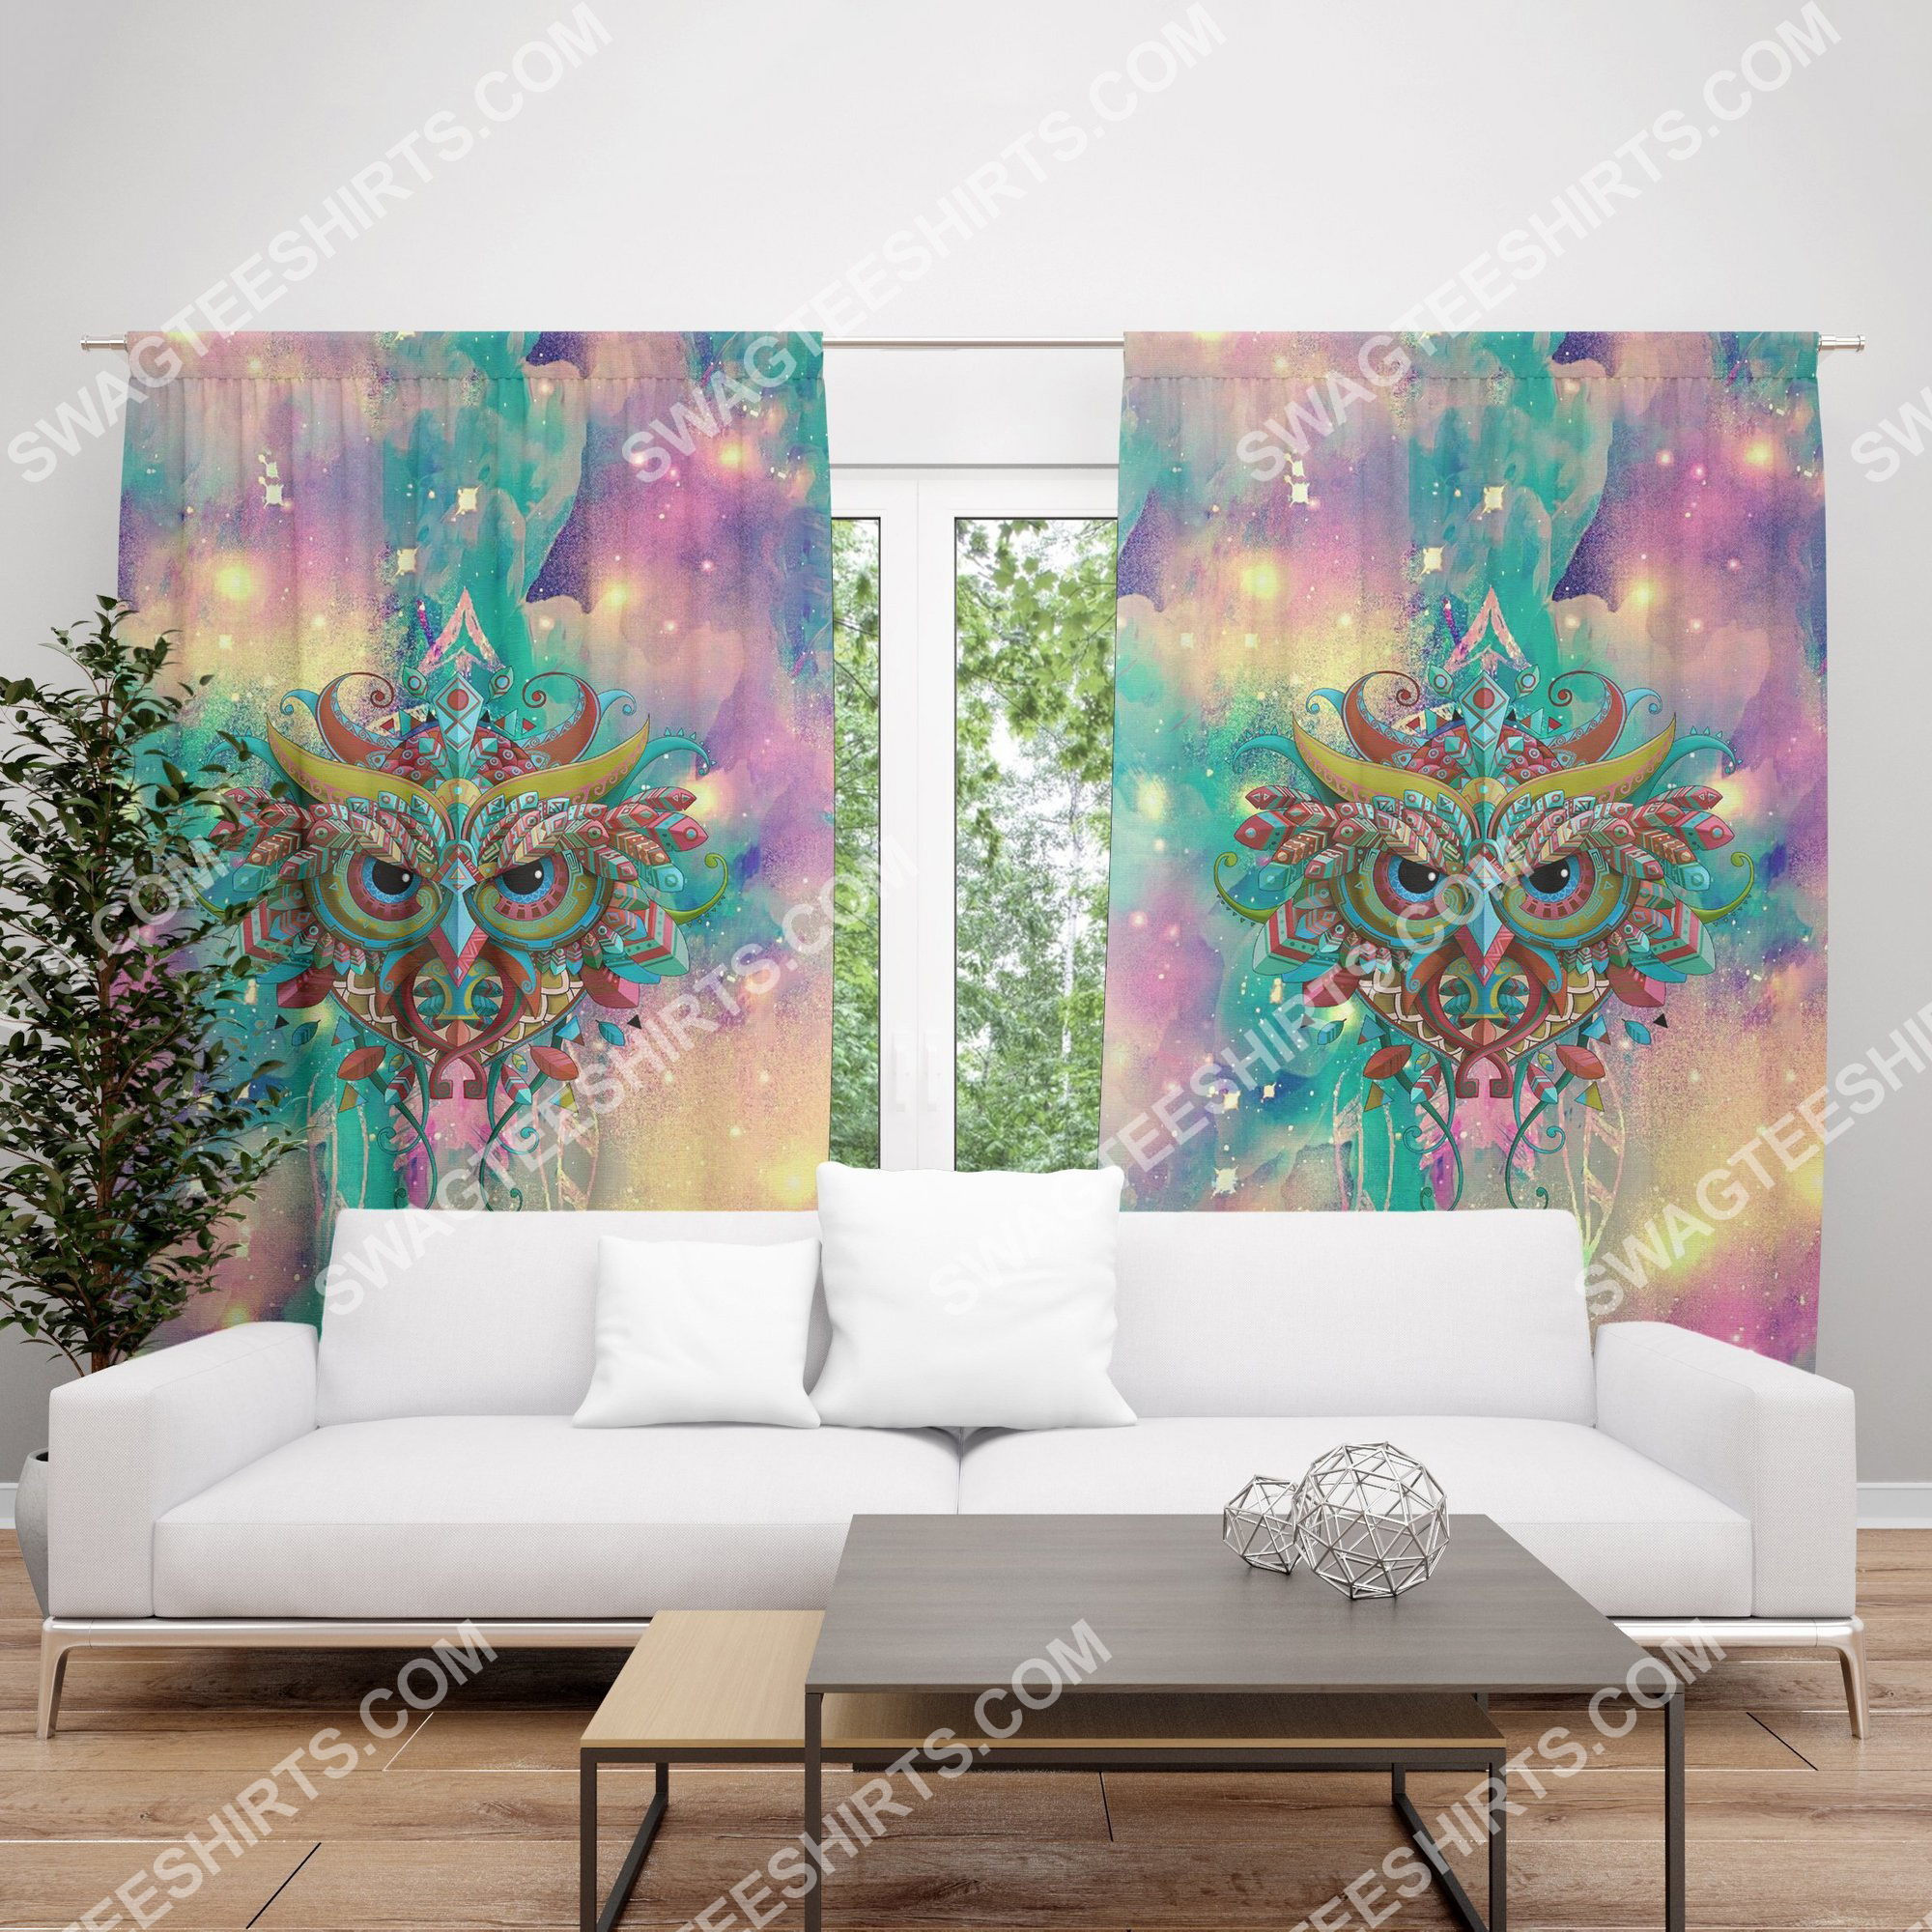 the owl galaxy all over printed window curtains 3(1)